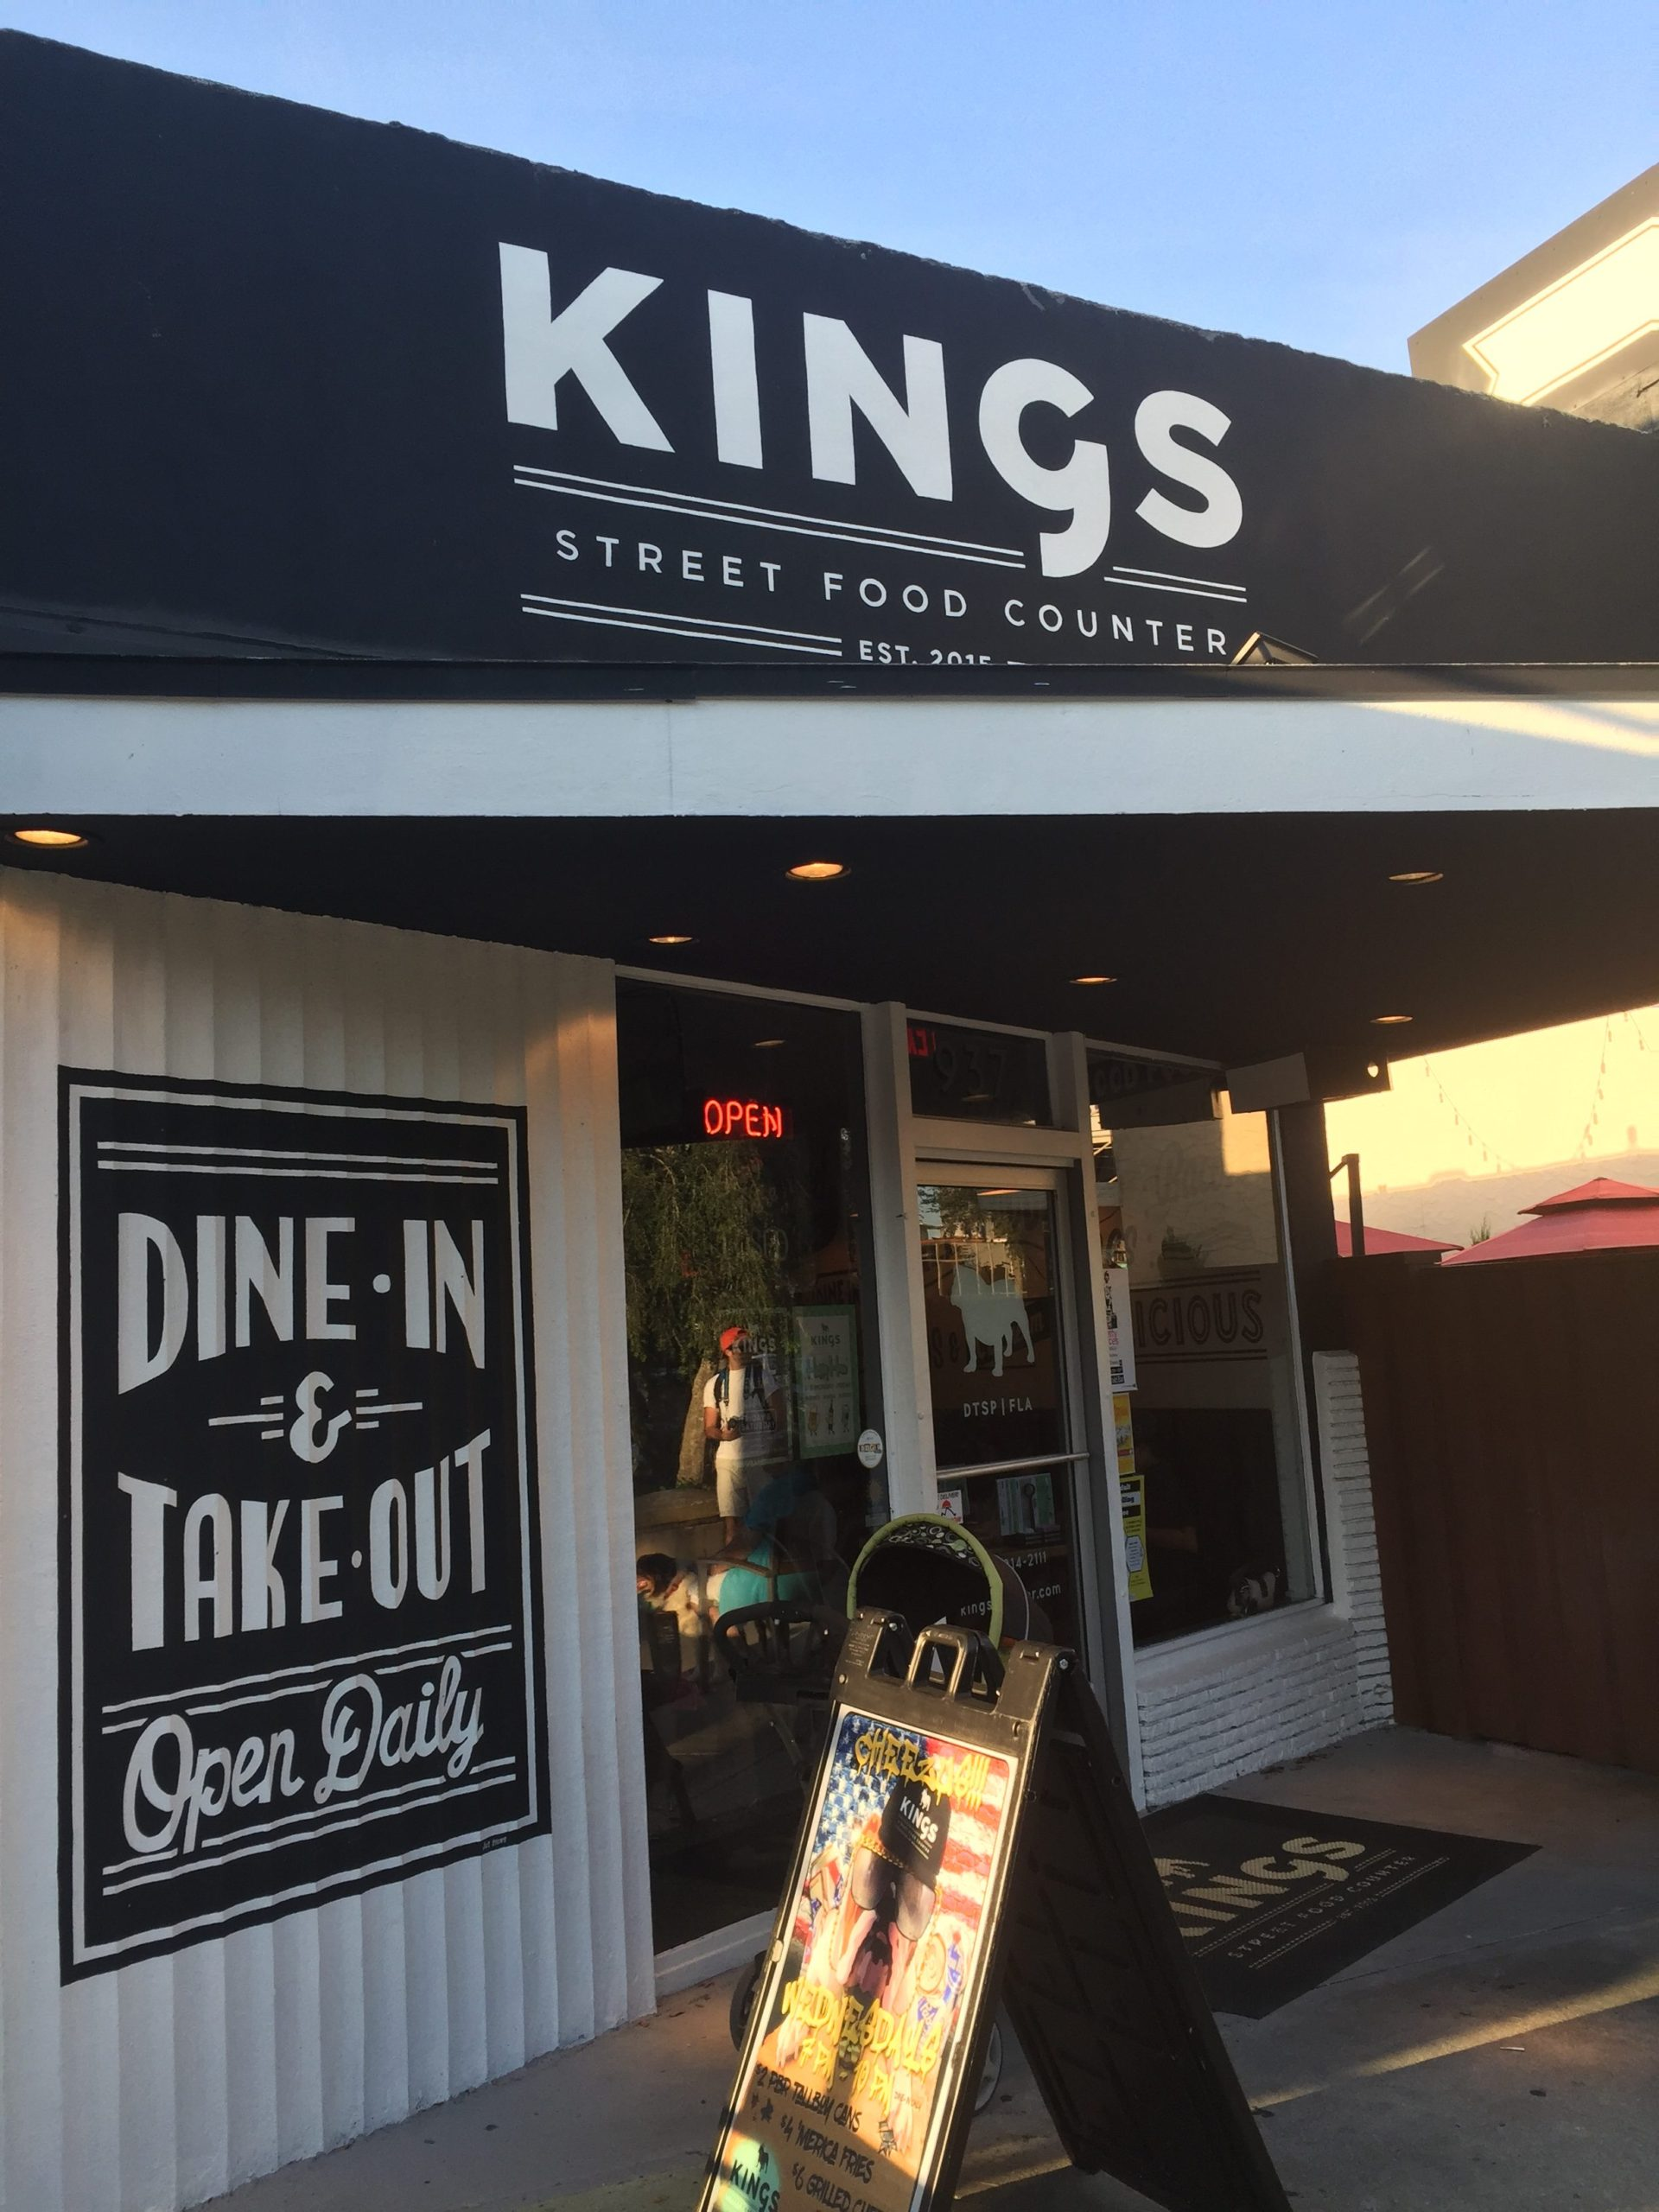 King's Street Food Counter: Kid Friendly Approved